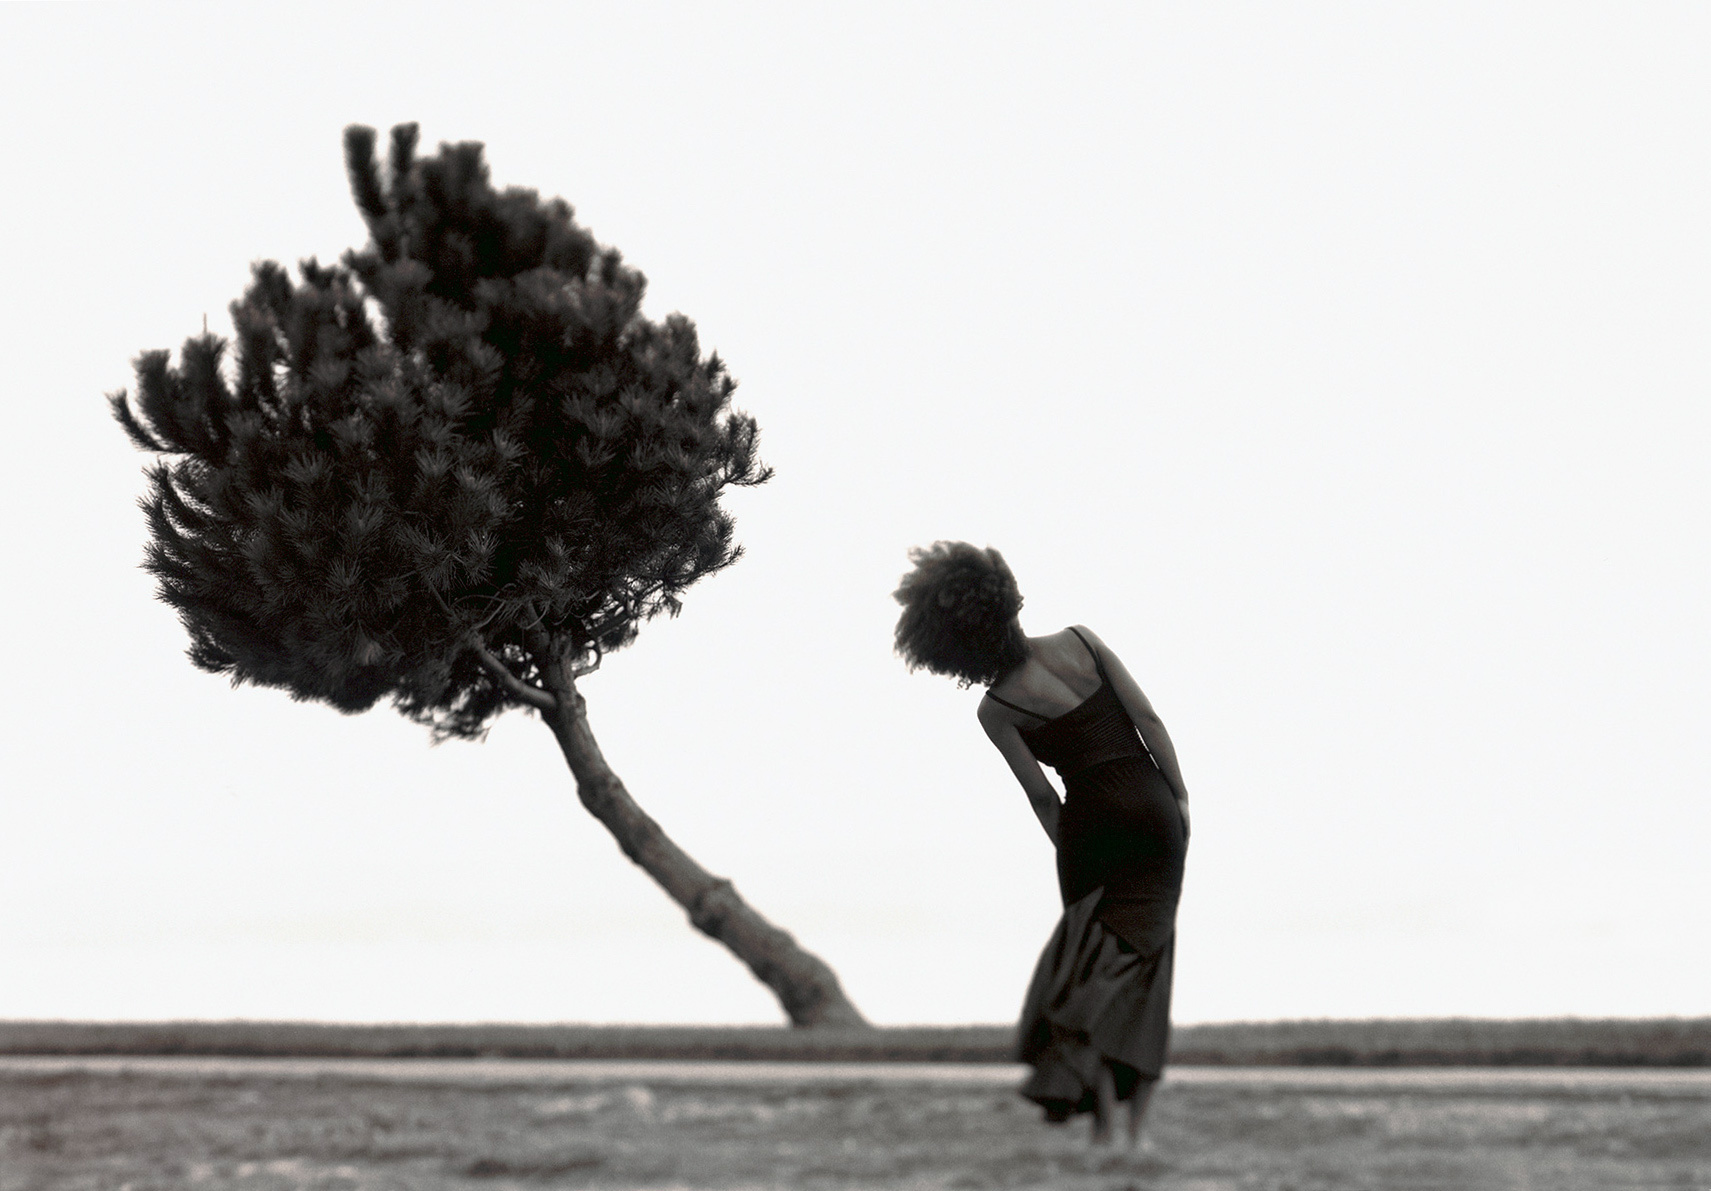 1_girl_bending_with_tree_large_